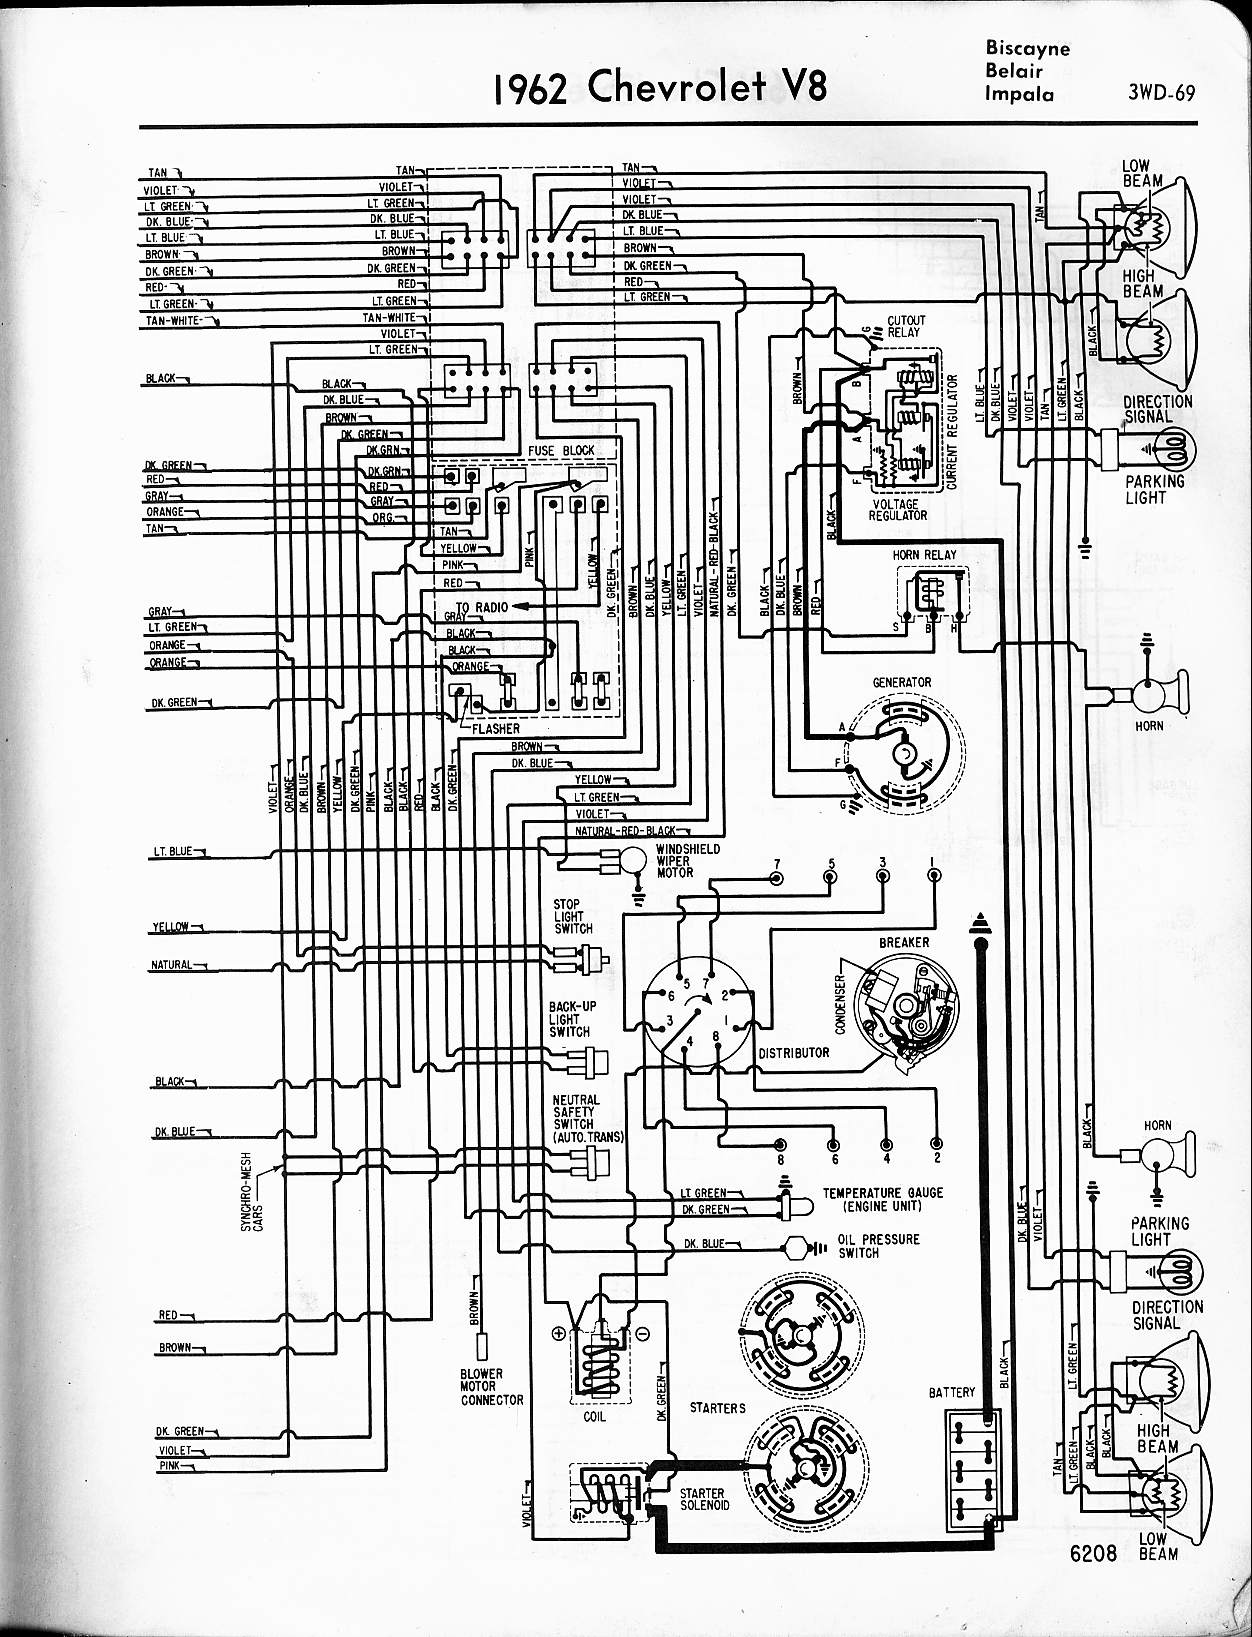 WRG-4671] Jaguar Xjs Starter Relay Wiring Diagram Free Picture on jaguar mark x, jaguar exhaust system, 2005 mini cooper parts diagrams, jaguar shooting brake, dish network receiver installation diagrams, jaguar gt, jaguar xk8 problems, jaguar mark 2, jaguar 2 door, jaguar wagon, jaguar rear end, jaguar fuel pump diagram, jaguar growler, jaguar e class, jaguar r type, jaguar parts diagrams, jaguar hardtop convertible, jaguar racing green, jaguar electrical diagrams,